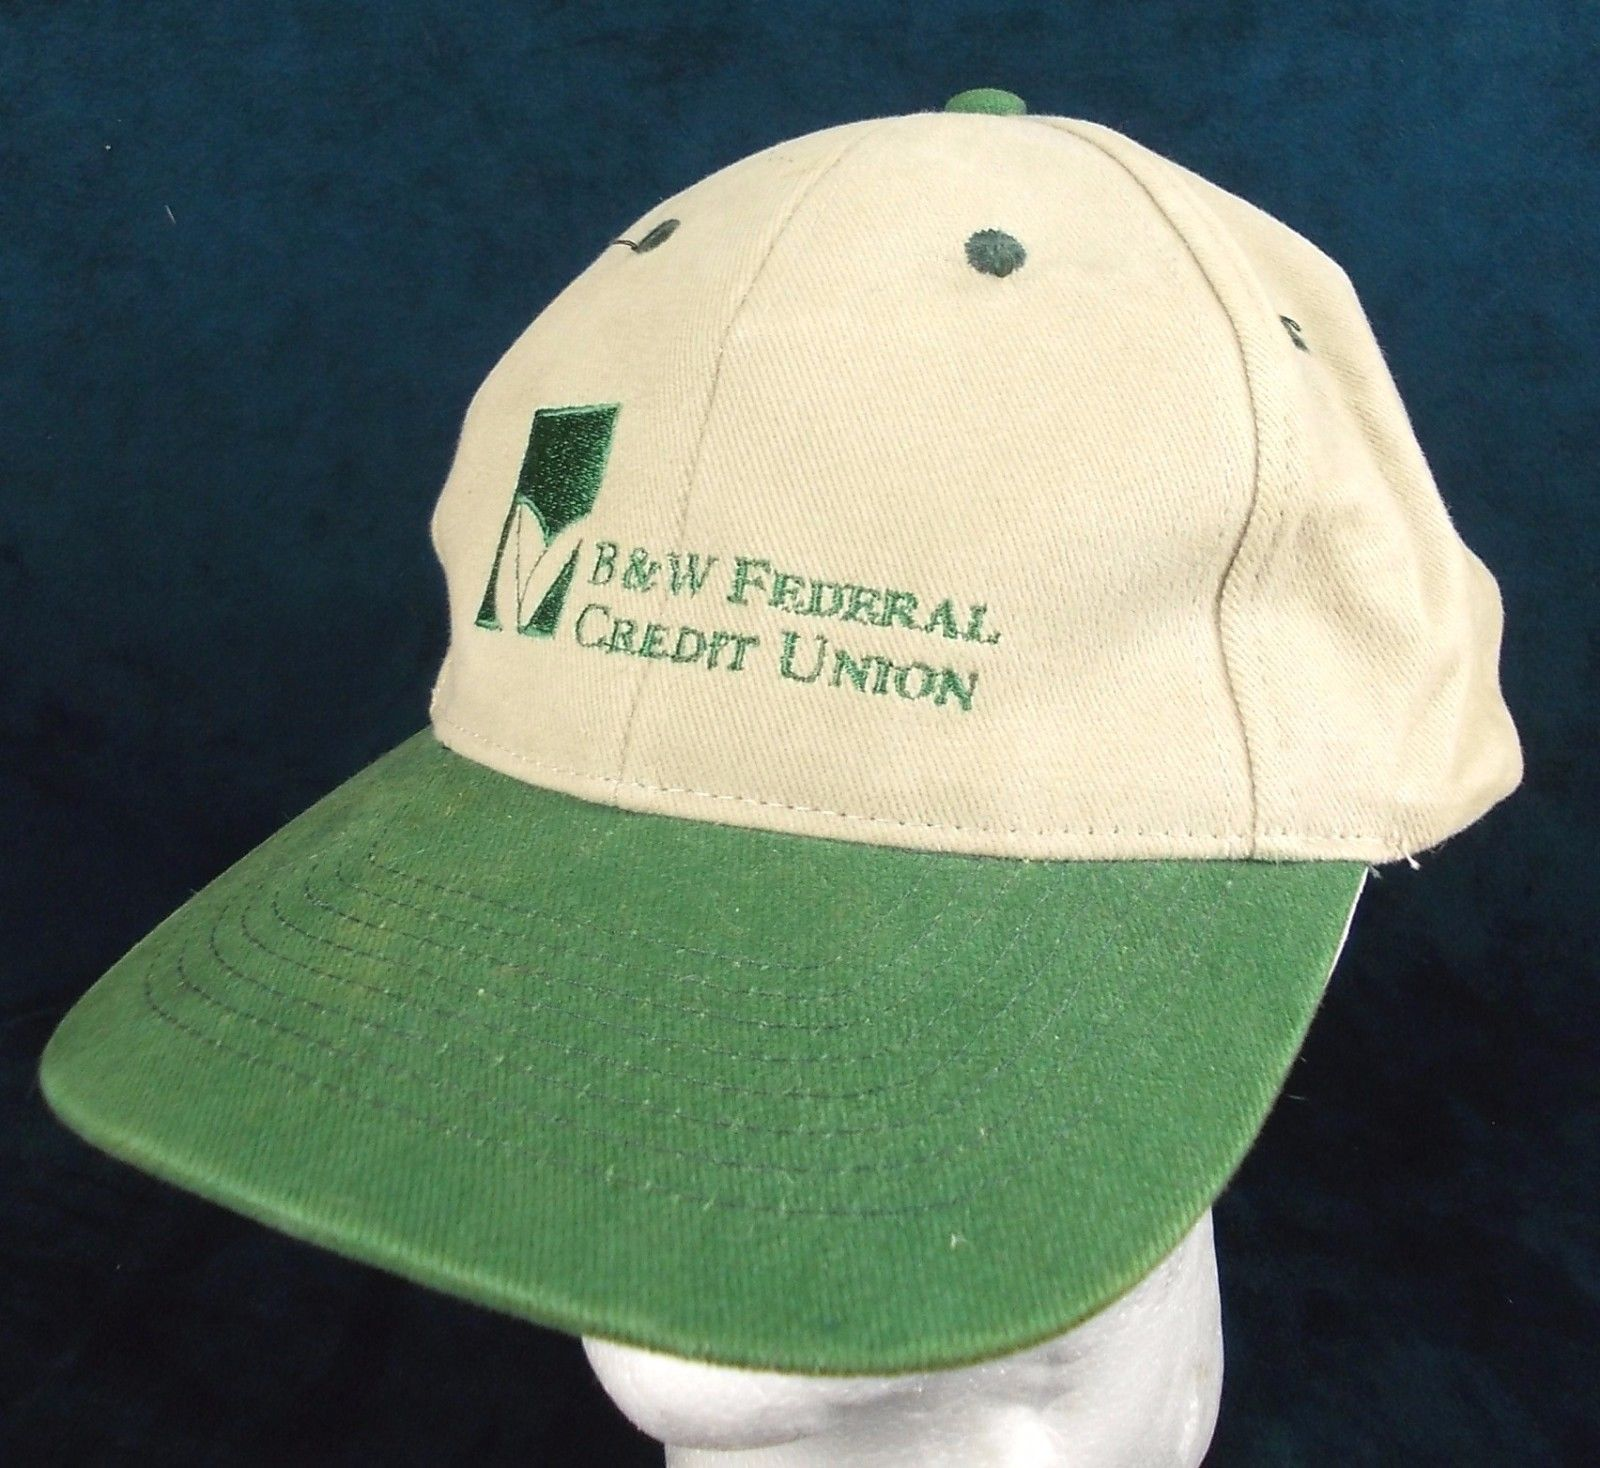 B&W Federal Credit Union Golf Hat Ajustable and 46 similar items